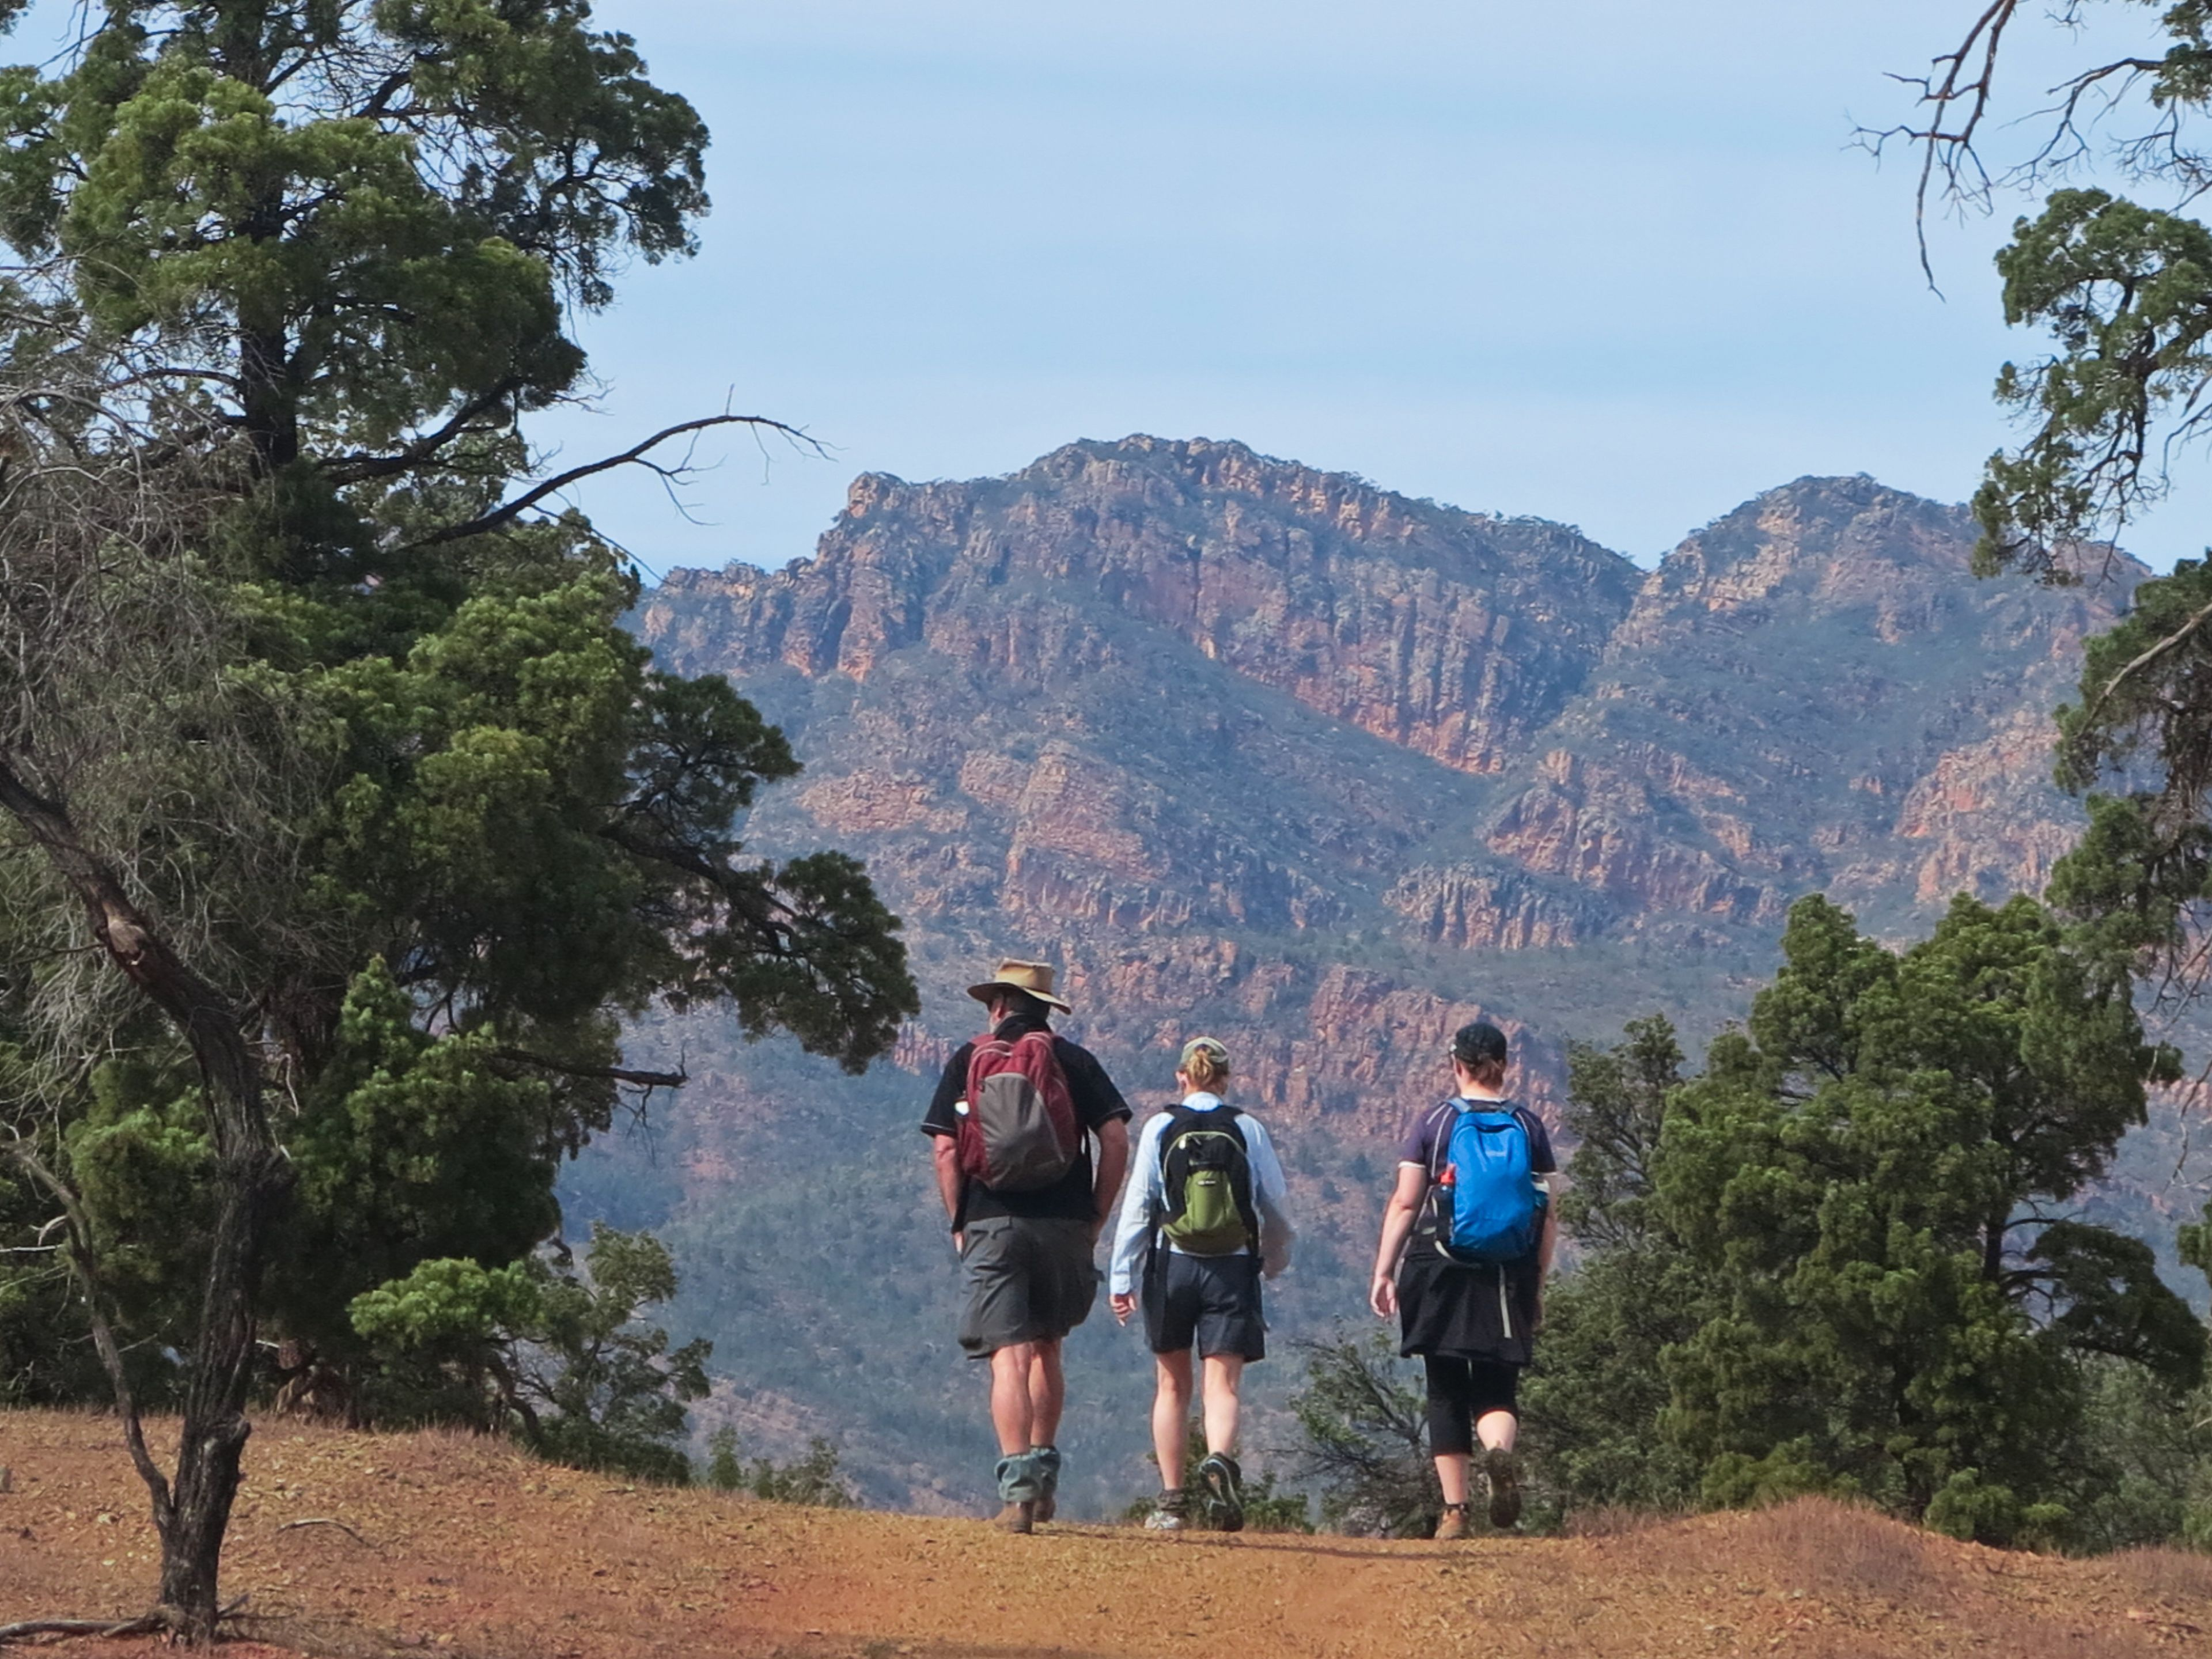 Hiking group in the mountains in Australia